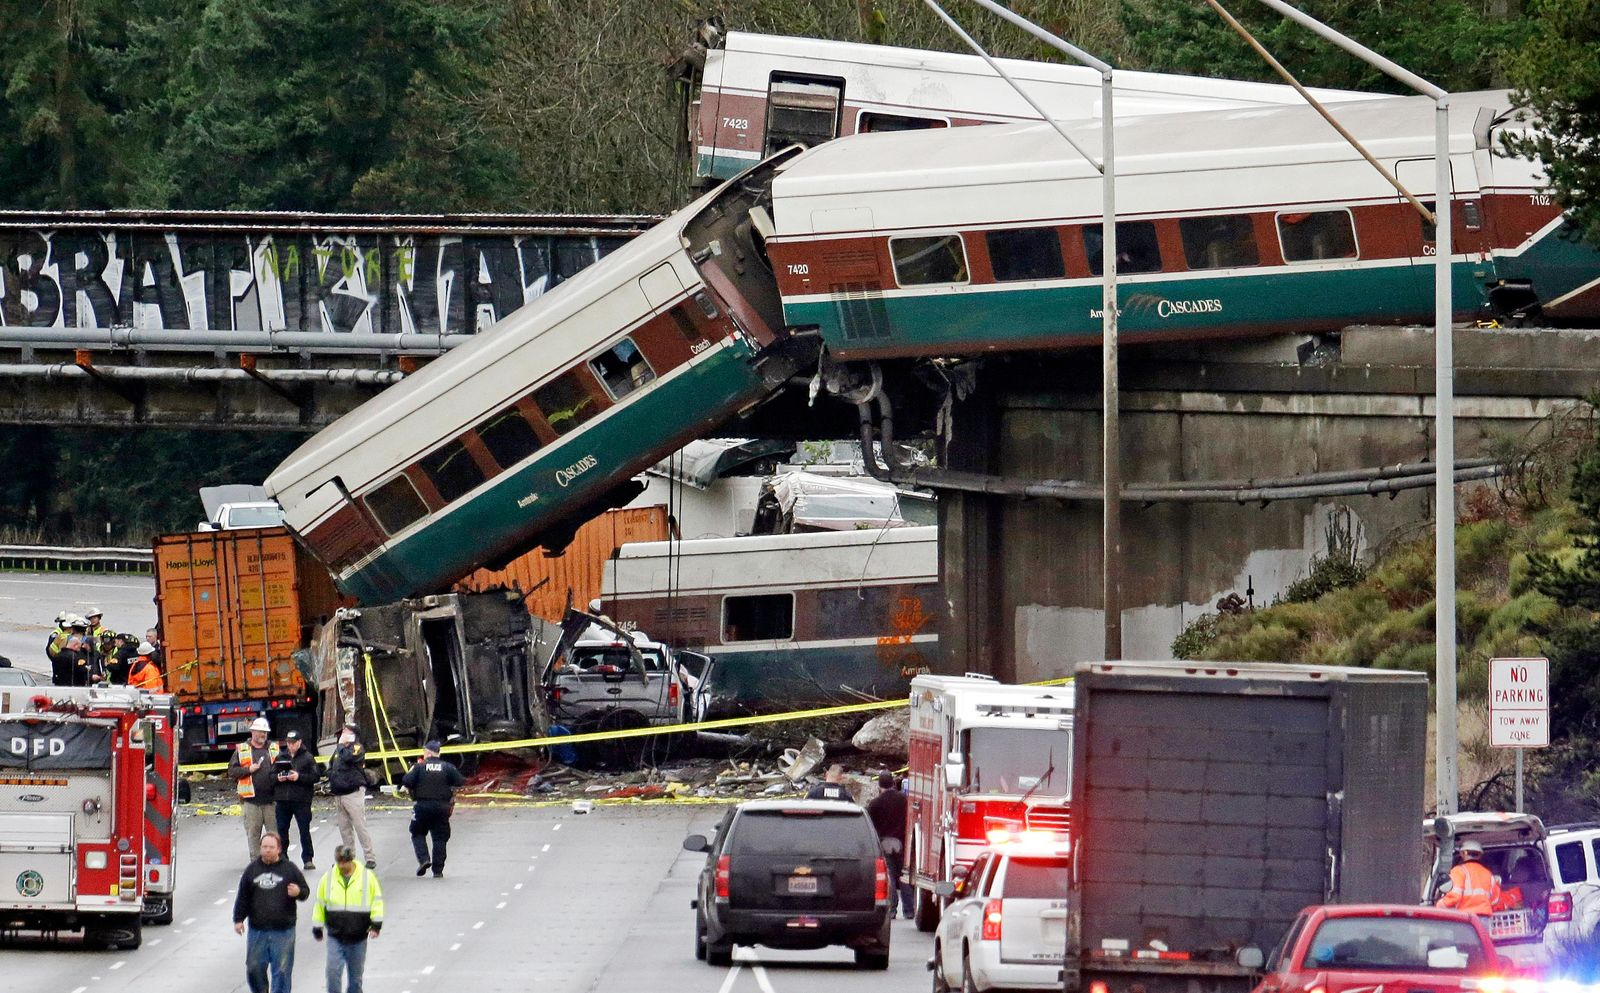 FILE - In this Dec. 18, 2017, file photo, cars from an Amtrak train lie spilled onto Interstate 5 below alongside smashed vehicles as some train cars remain on the tracks above in DuPont, Wash. Federal investigators say video aboard the Amtrak train that derailed in Washington state shows crews weren't using personal electronic devices and that the engineer remarked about the speed six seconds before the train went off the tracks south of Seattle. (AP Photo/Elaine Thompson, File)